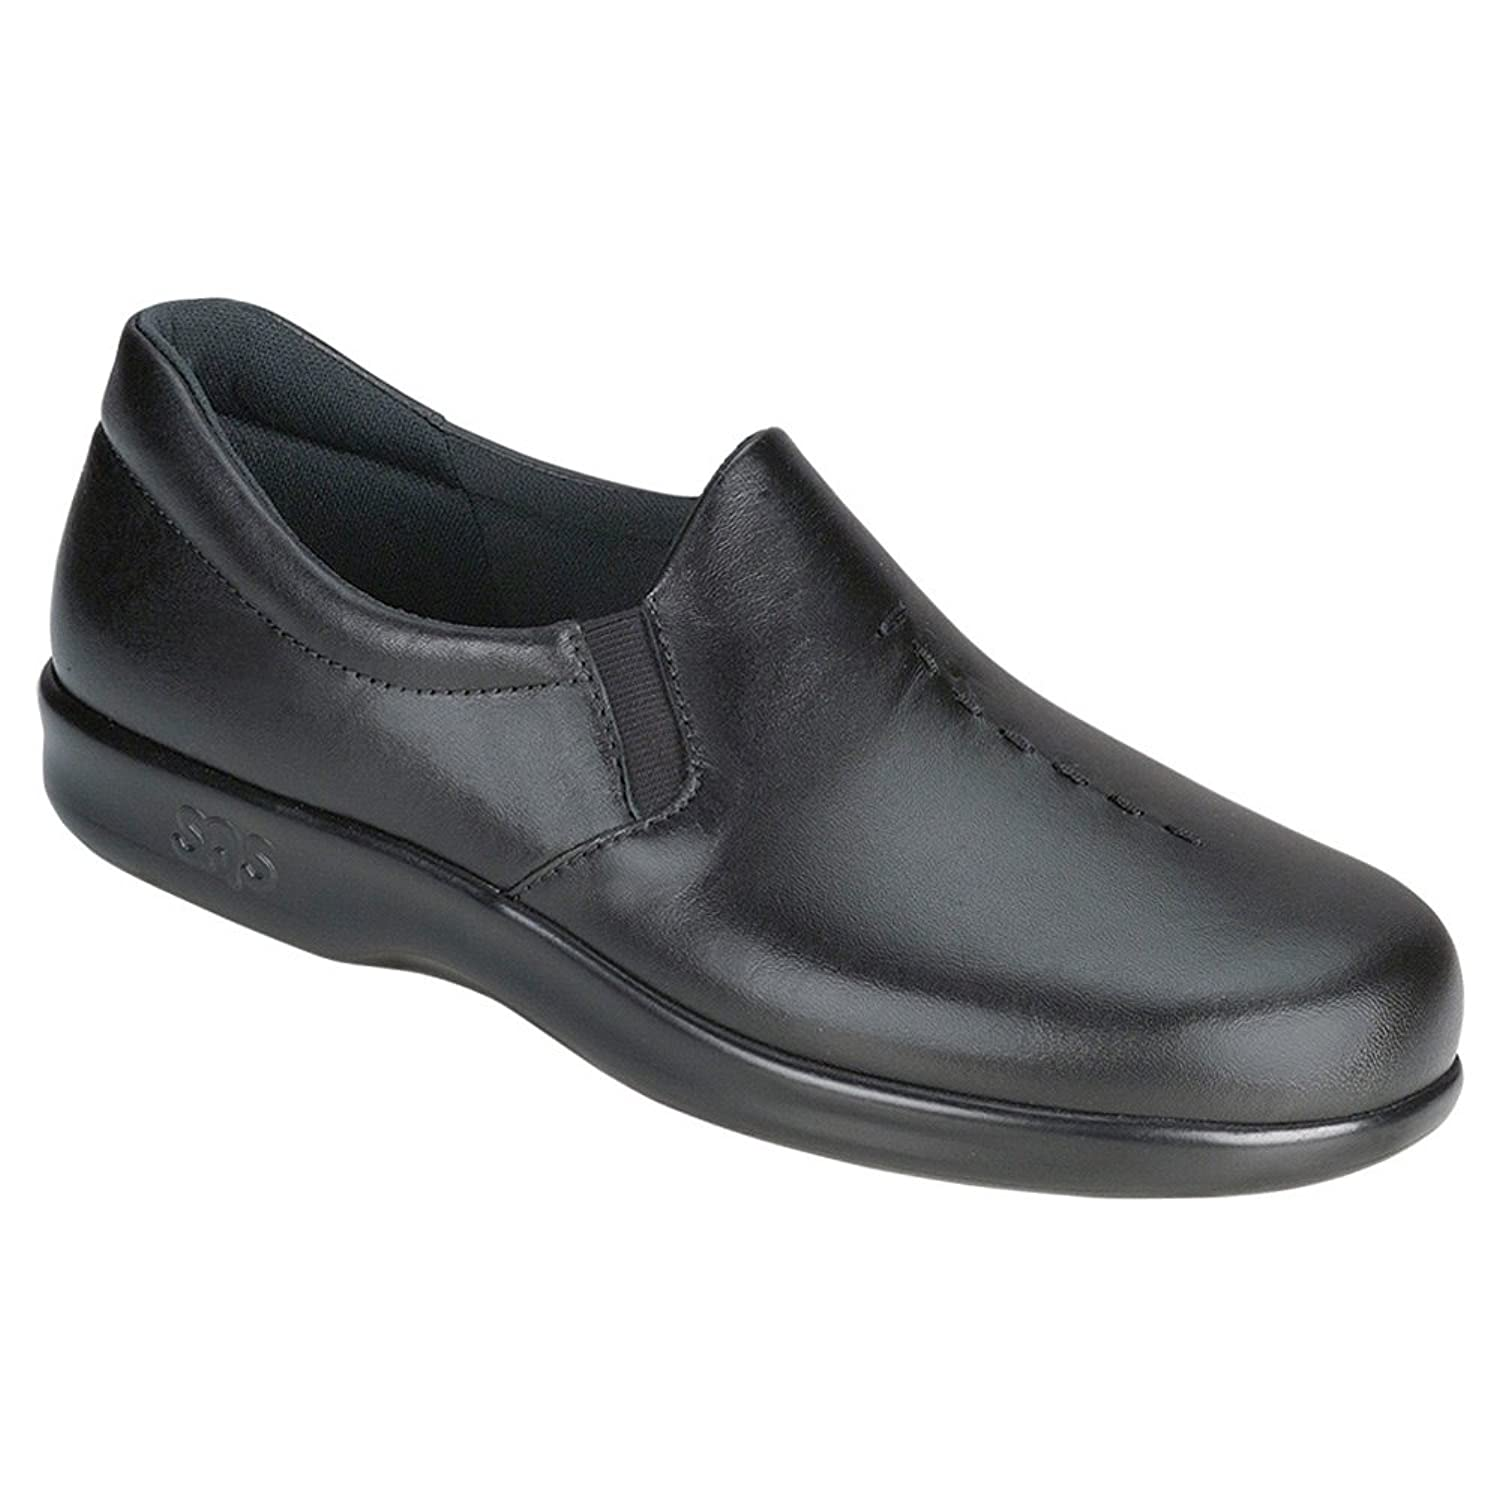 SAS Women's Viva Black Leather Slip on Comfort Shoes